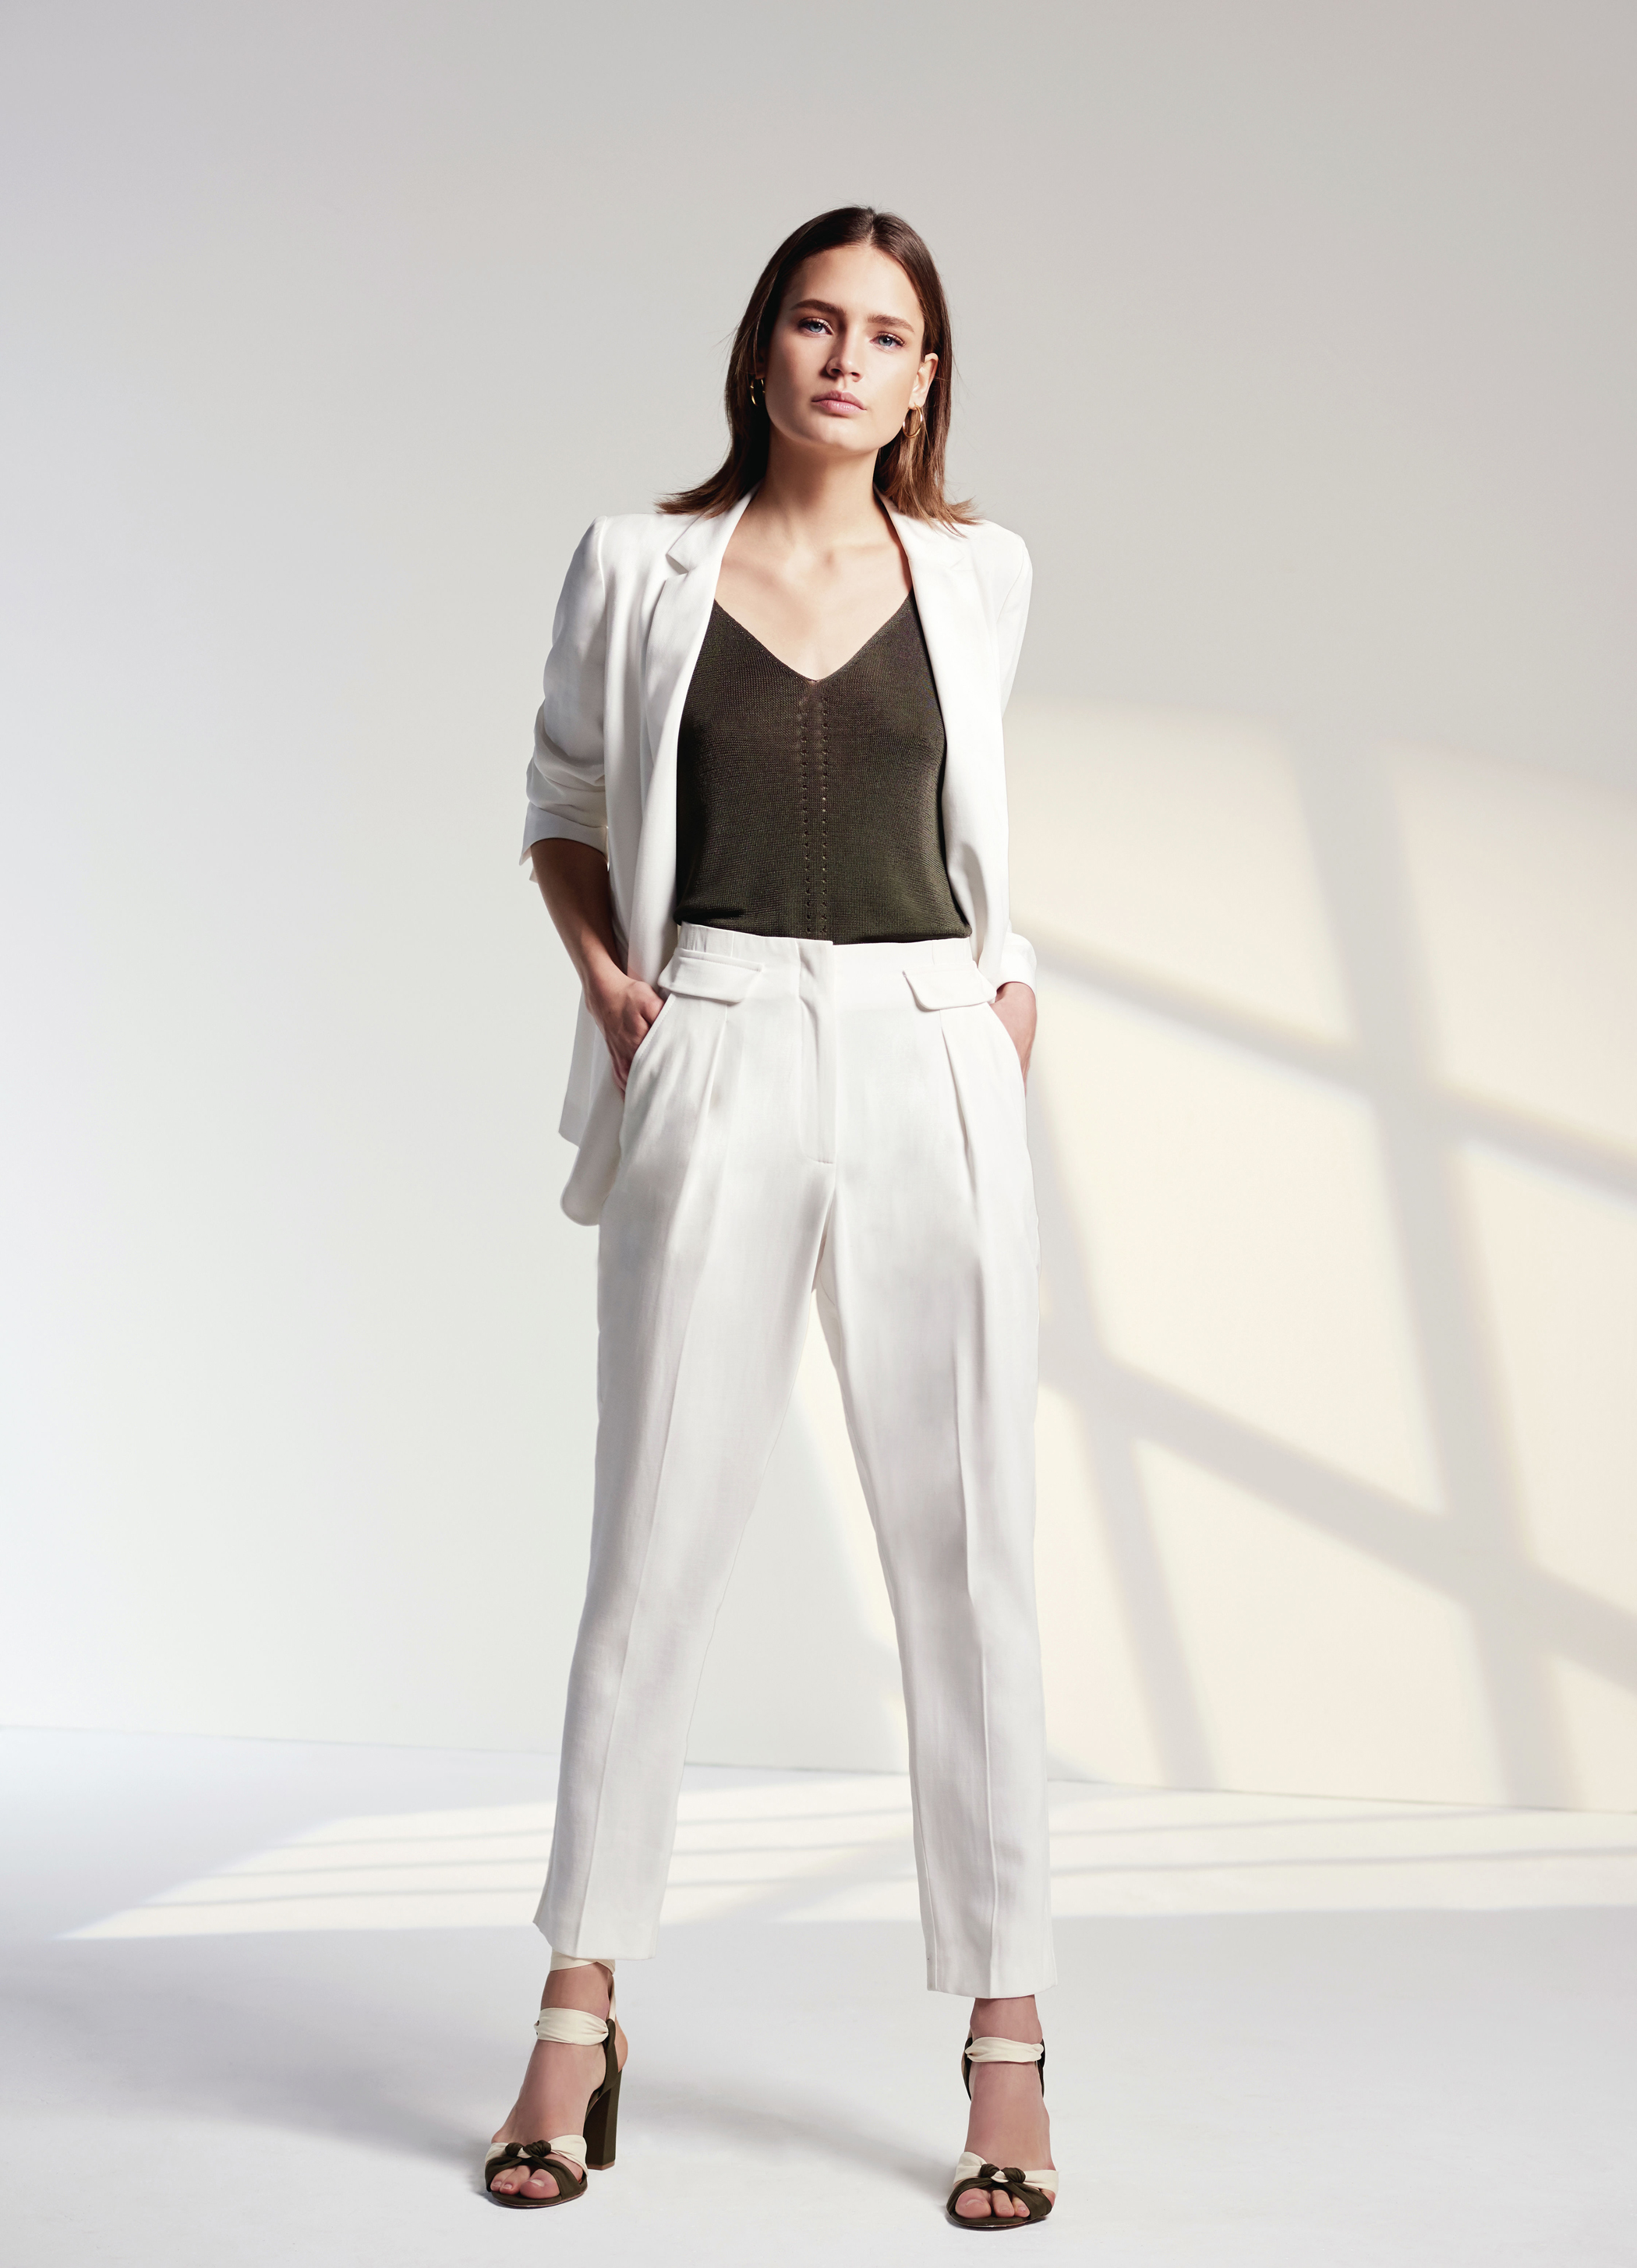 Wallis Ivory Tailored Blazer; Khaki Button Knitted Top; Ivory Tapered Trousers; Khaki Ankle Tie Knot Sandals